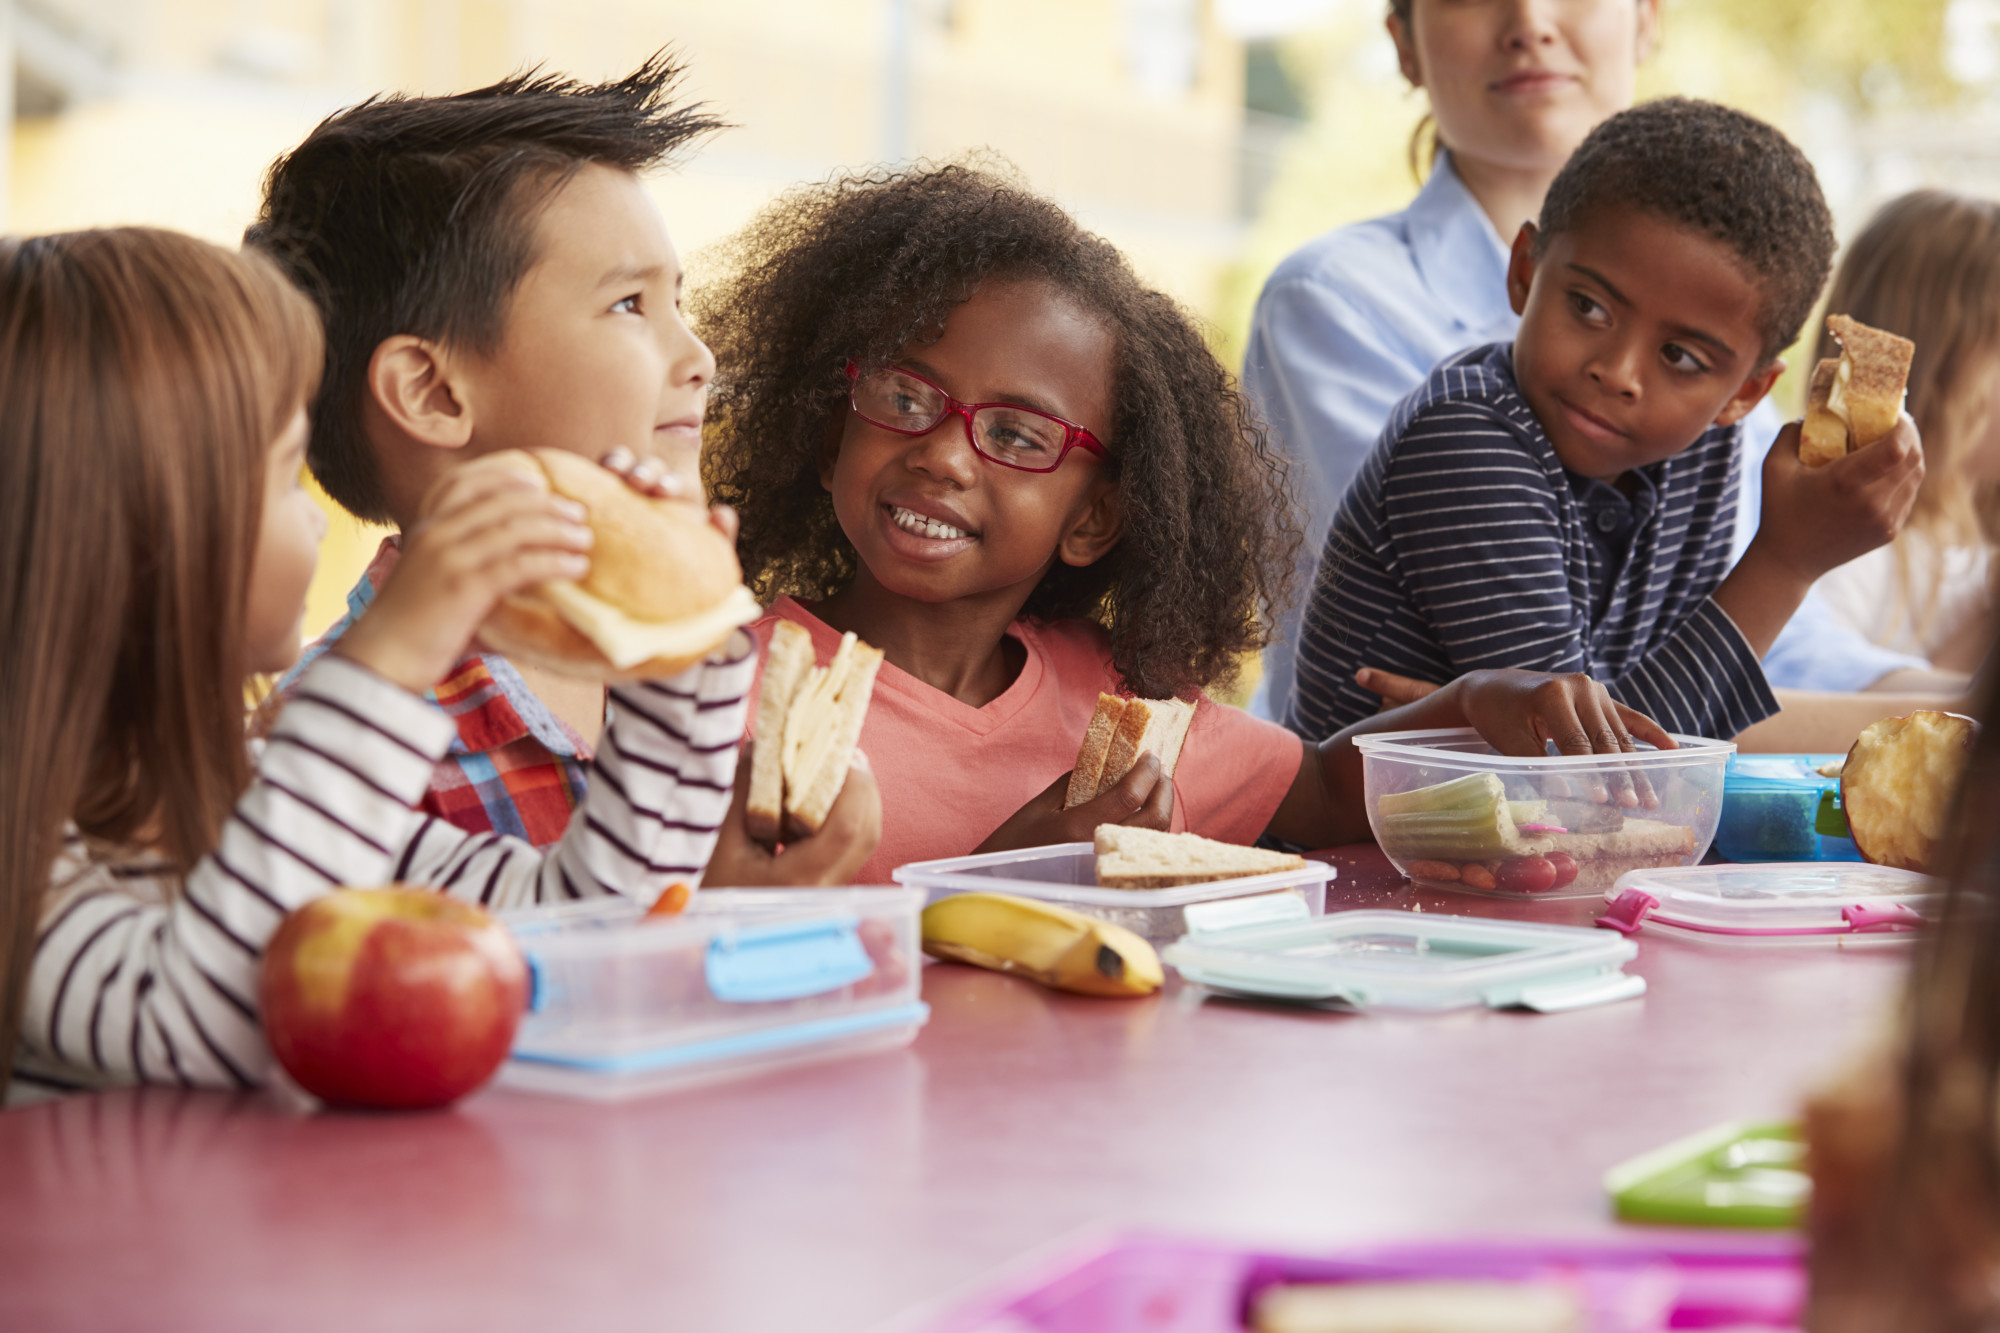 Kids Eating Lunch from Prepared Lunchboxes